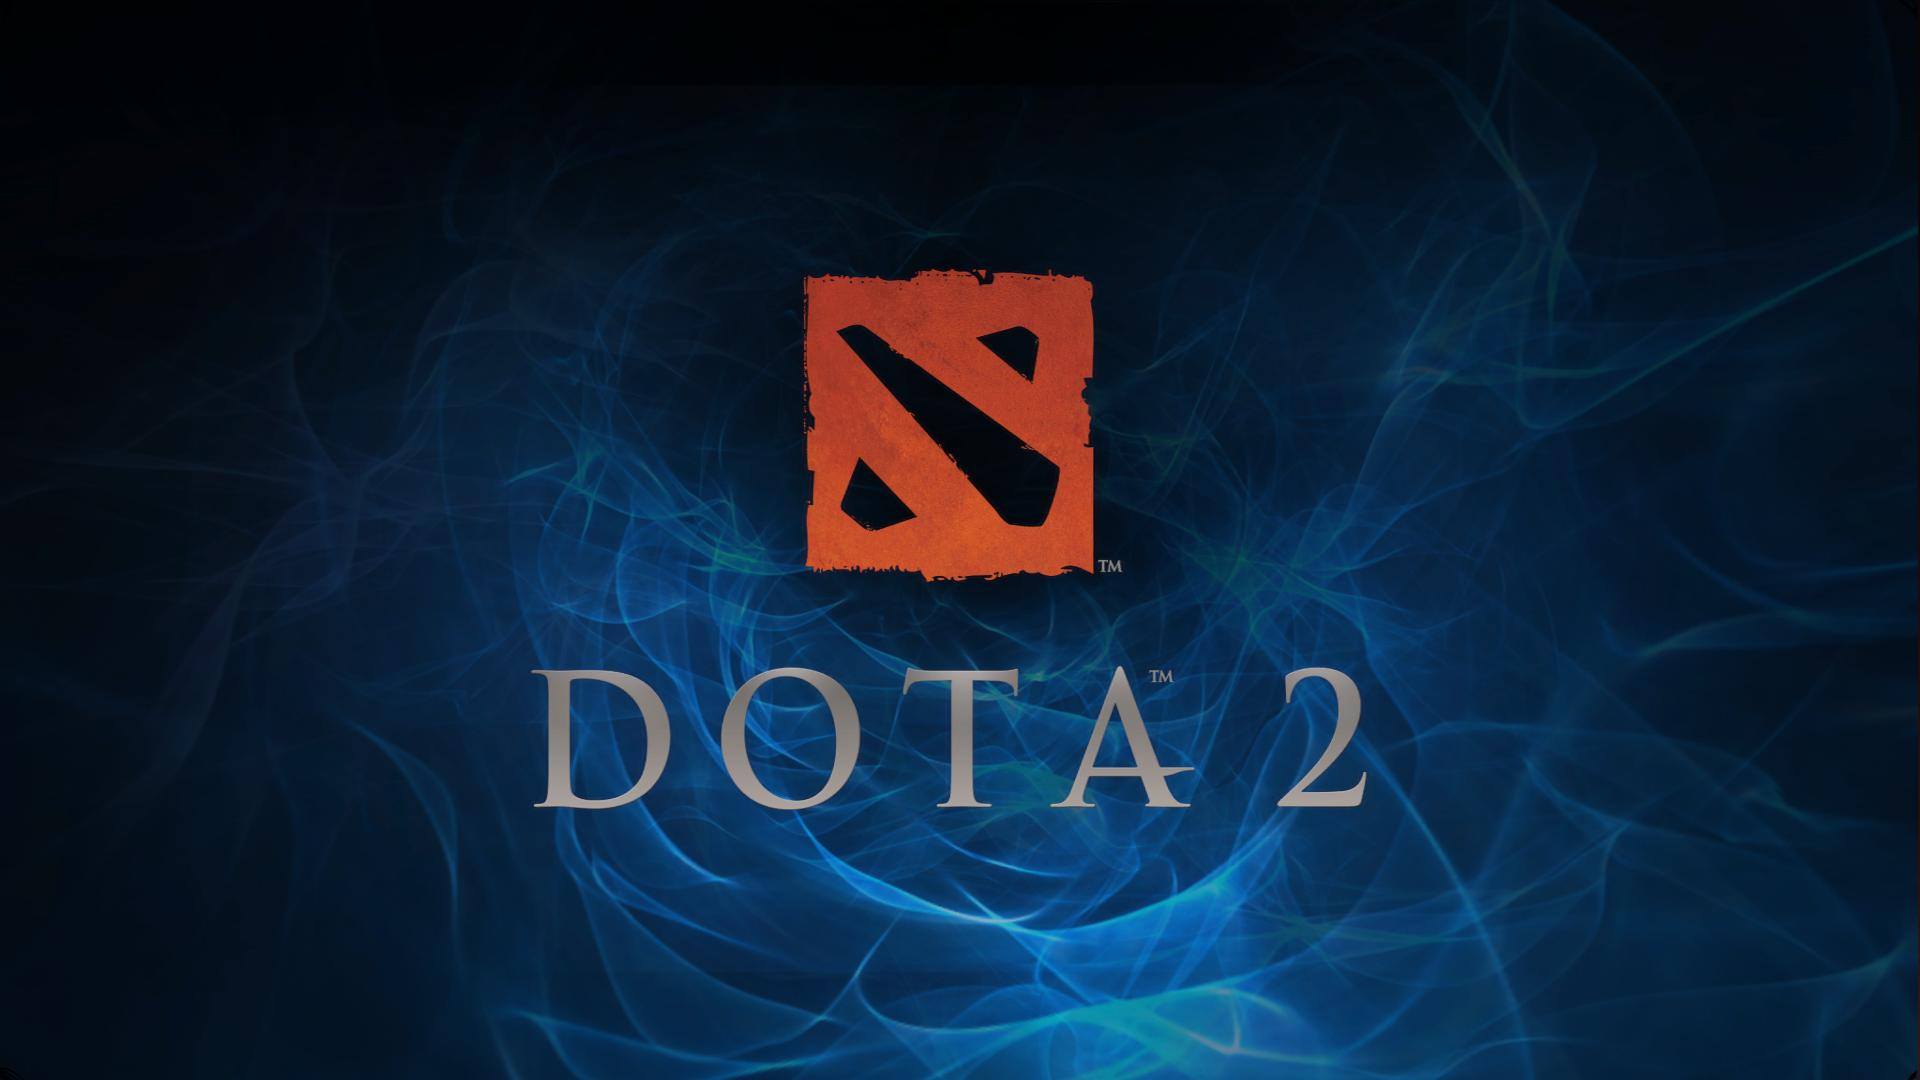 Want to Learn Dota 2? Start Here